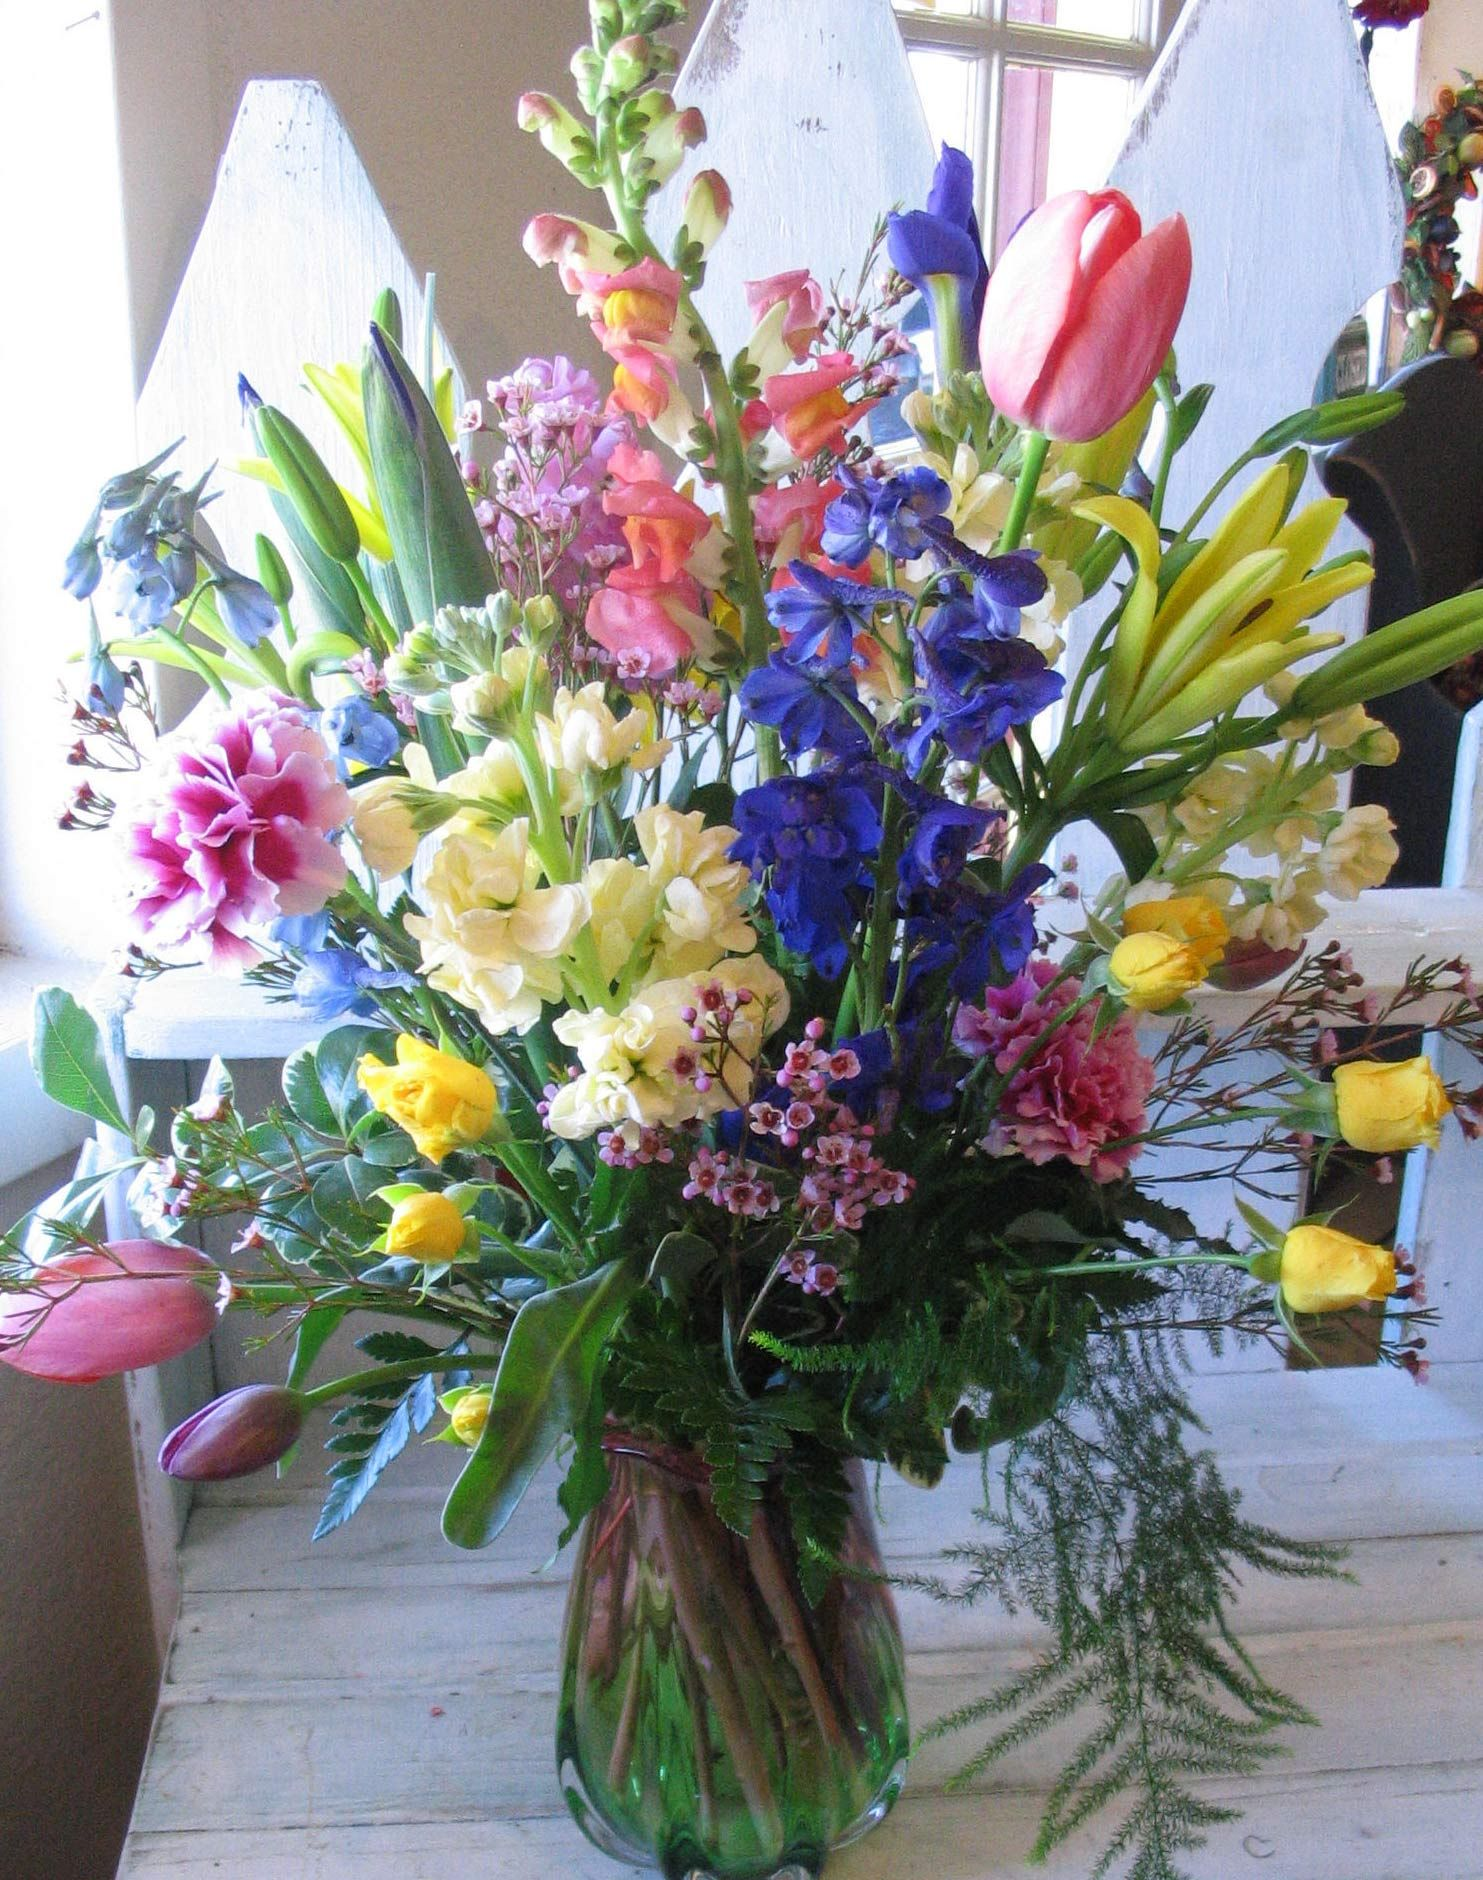 Fresh flowers from the florist are very nice for your sunday easter fresh flowers from the florist are very nice for your sunday easter dinner mightylinksfo